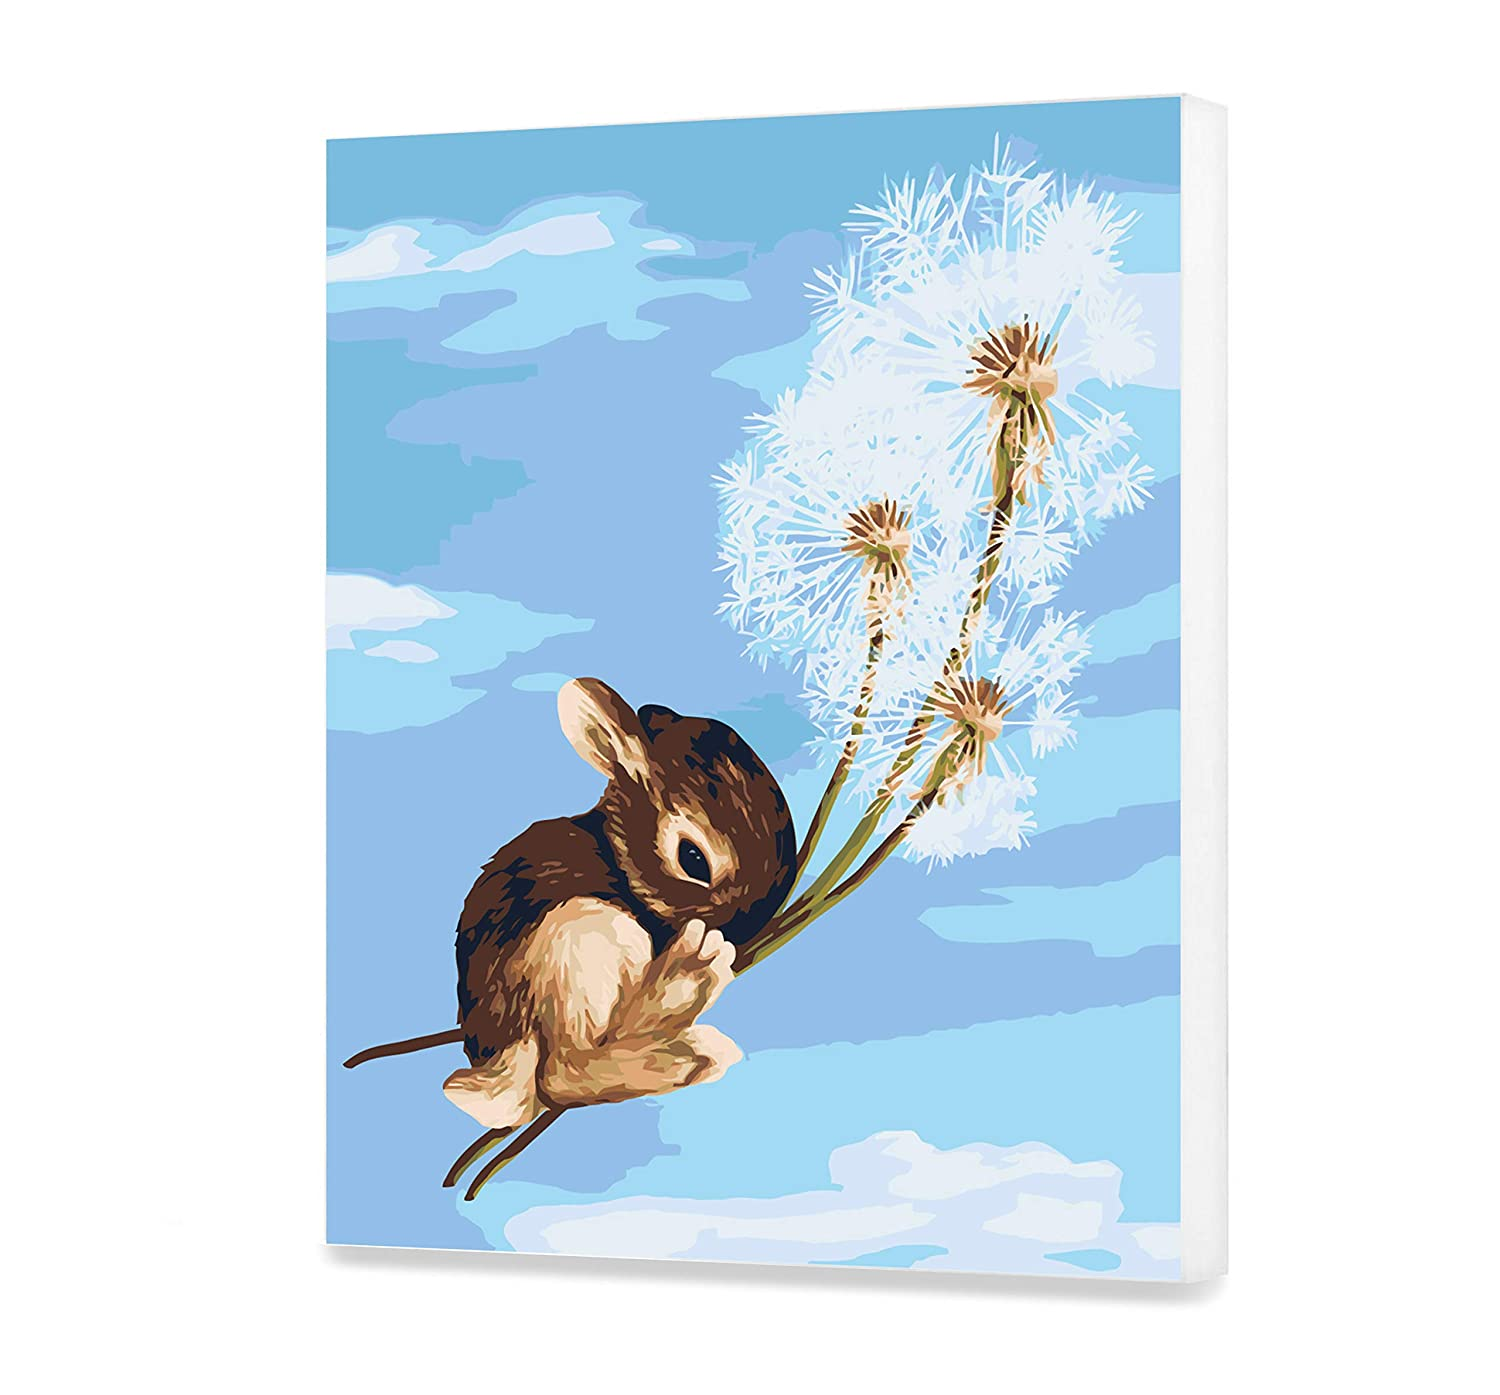 In The Air HandMade DIY Veronica Minozzi Painting by Numbers Cute Animal Set for Painting Canvas With Frame Unique Design Dandelions Picture Gift for Adult